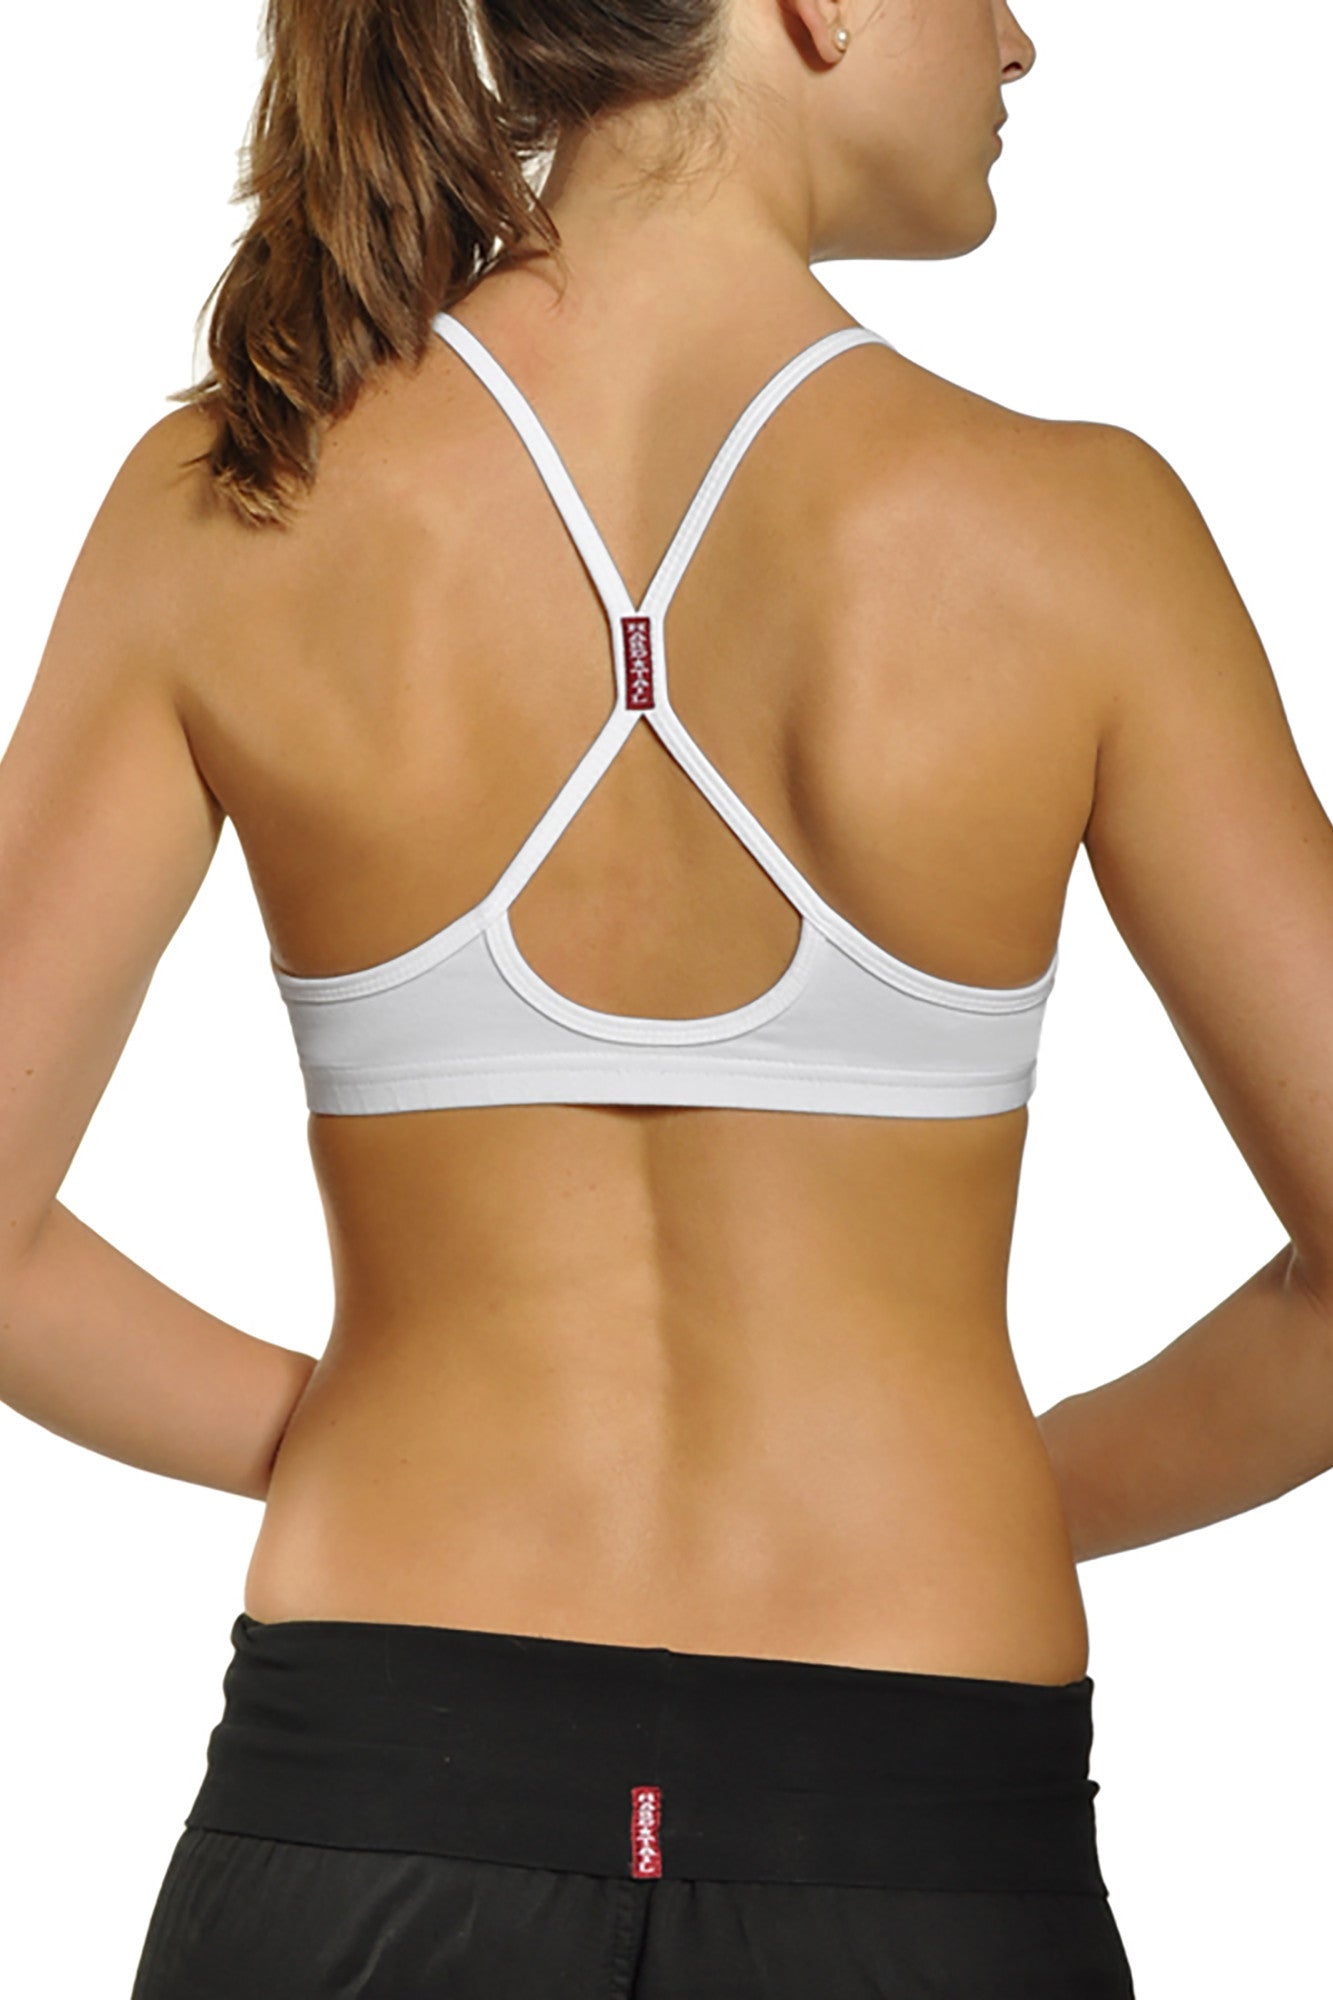 Free Style Bra (Style W-333, White) by Hard Tail Forever